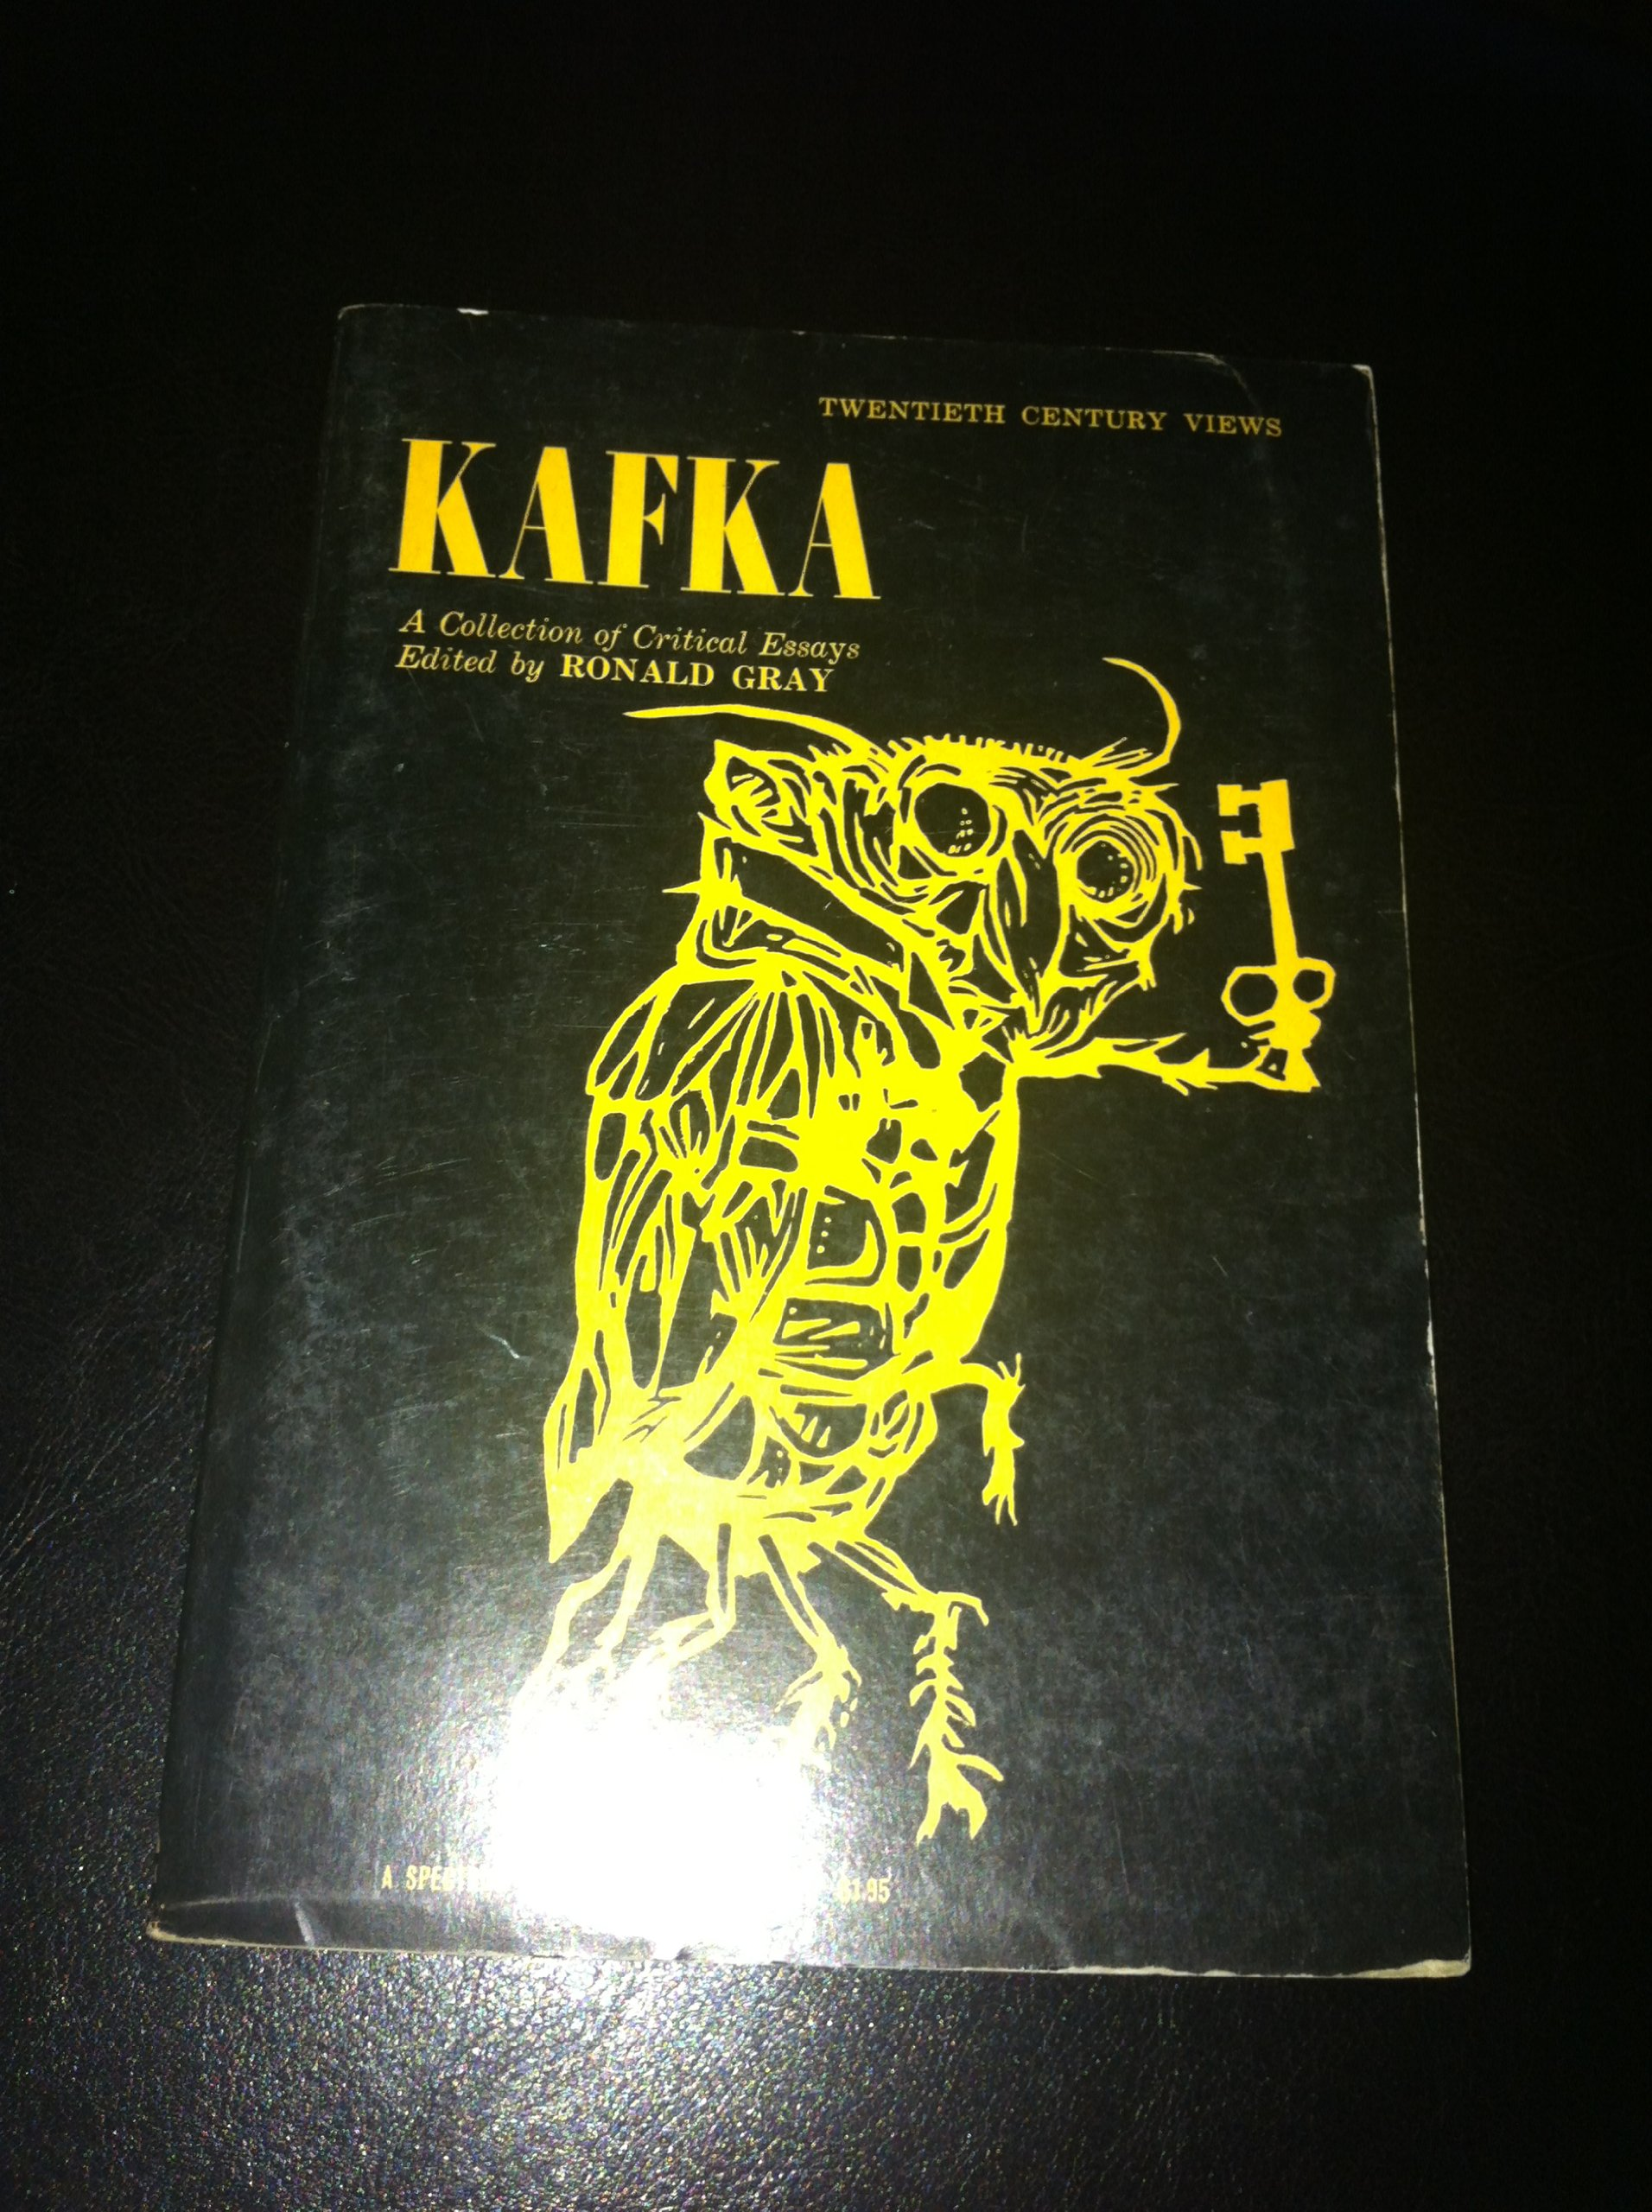 kafka a collection of critical essays co uk r gray books